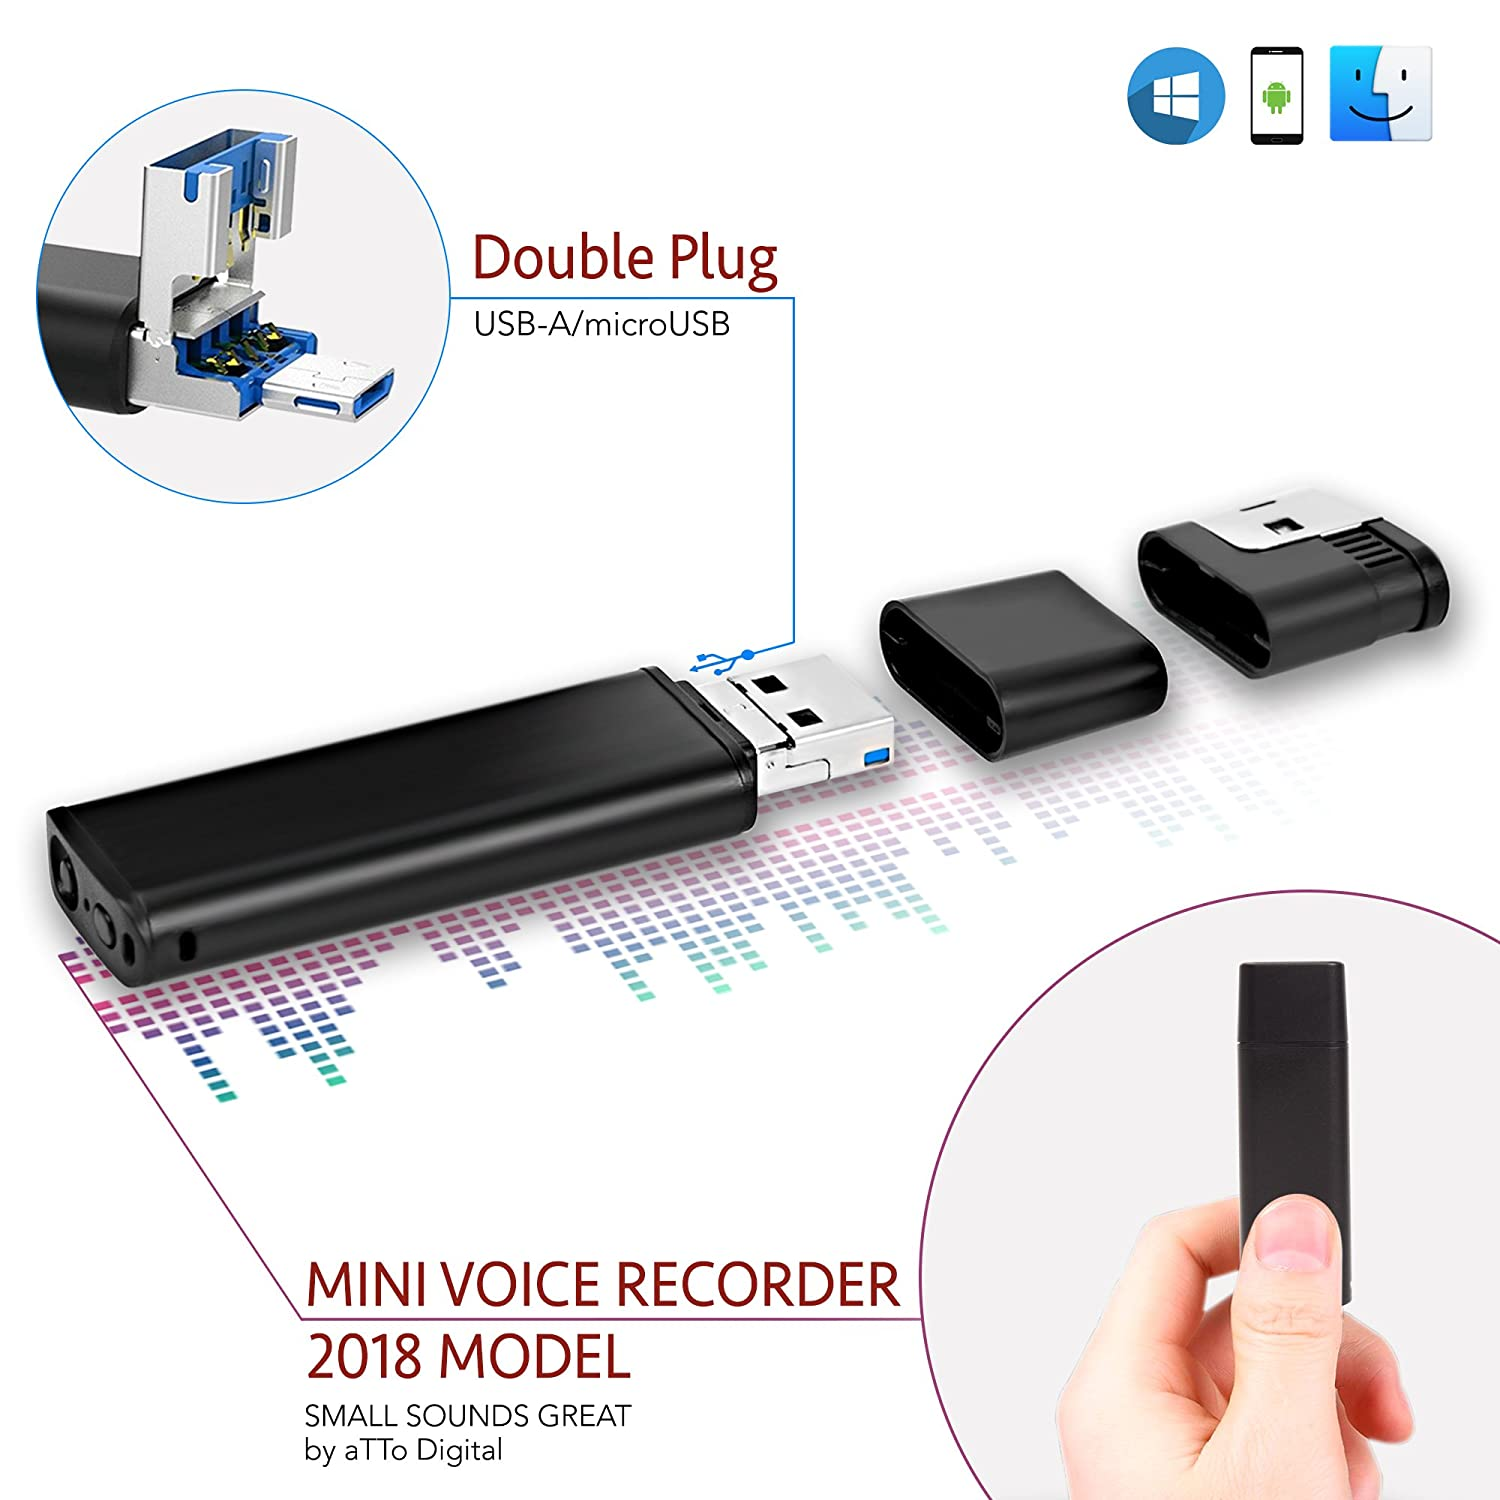 Mini USB Registratore Vocale Audio Spia Cimice 8GB / 94 ore, Voice Recorder compatibile con Smartphone, 26 ore durata della batteria aTTo Digital